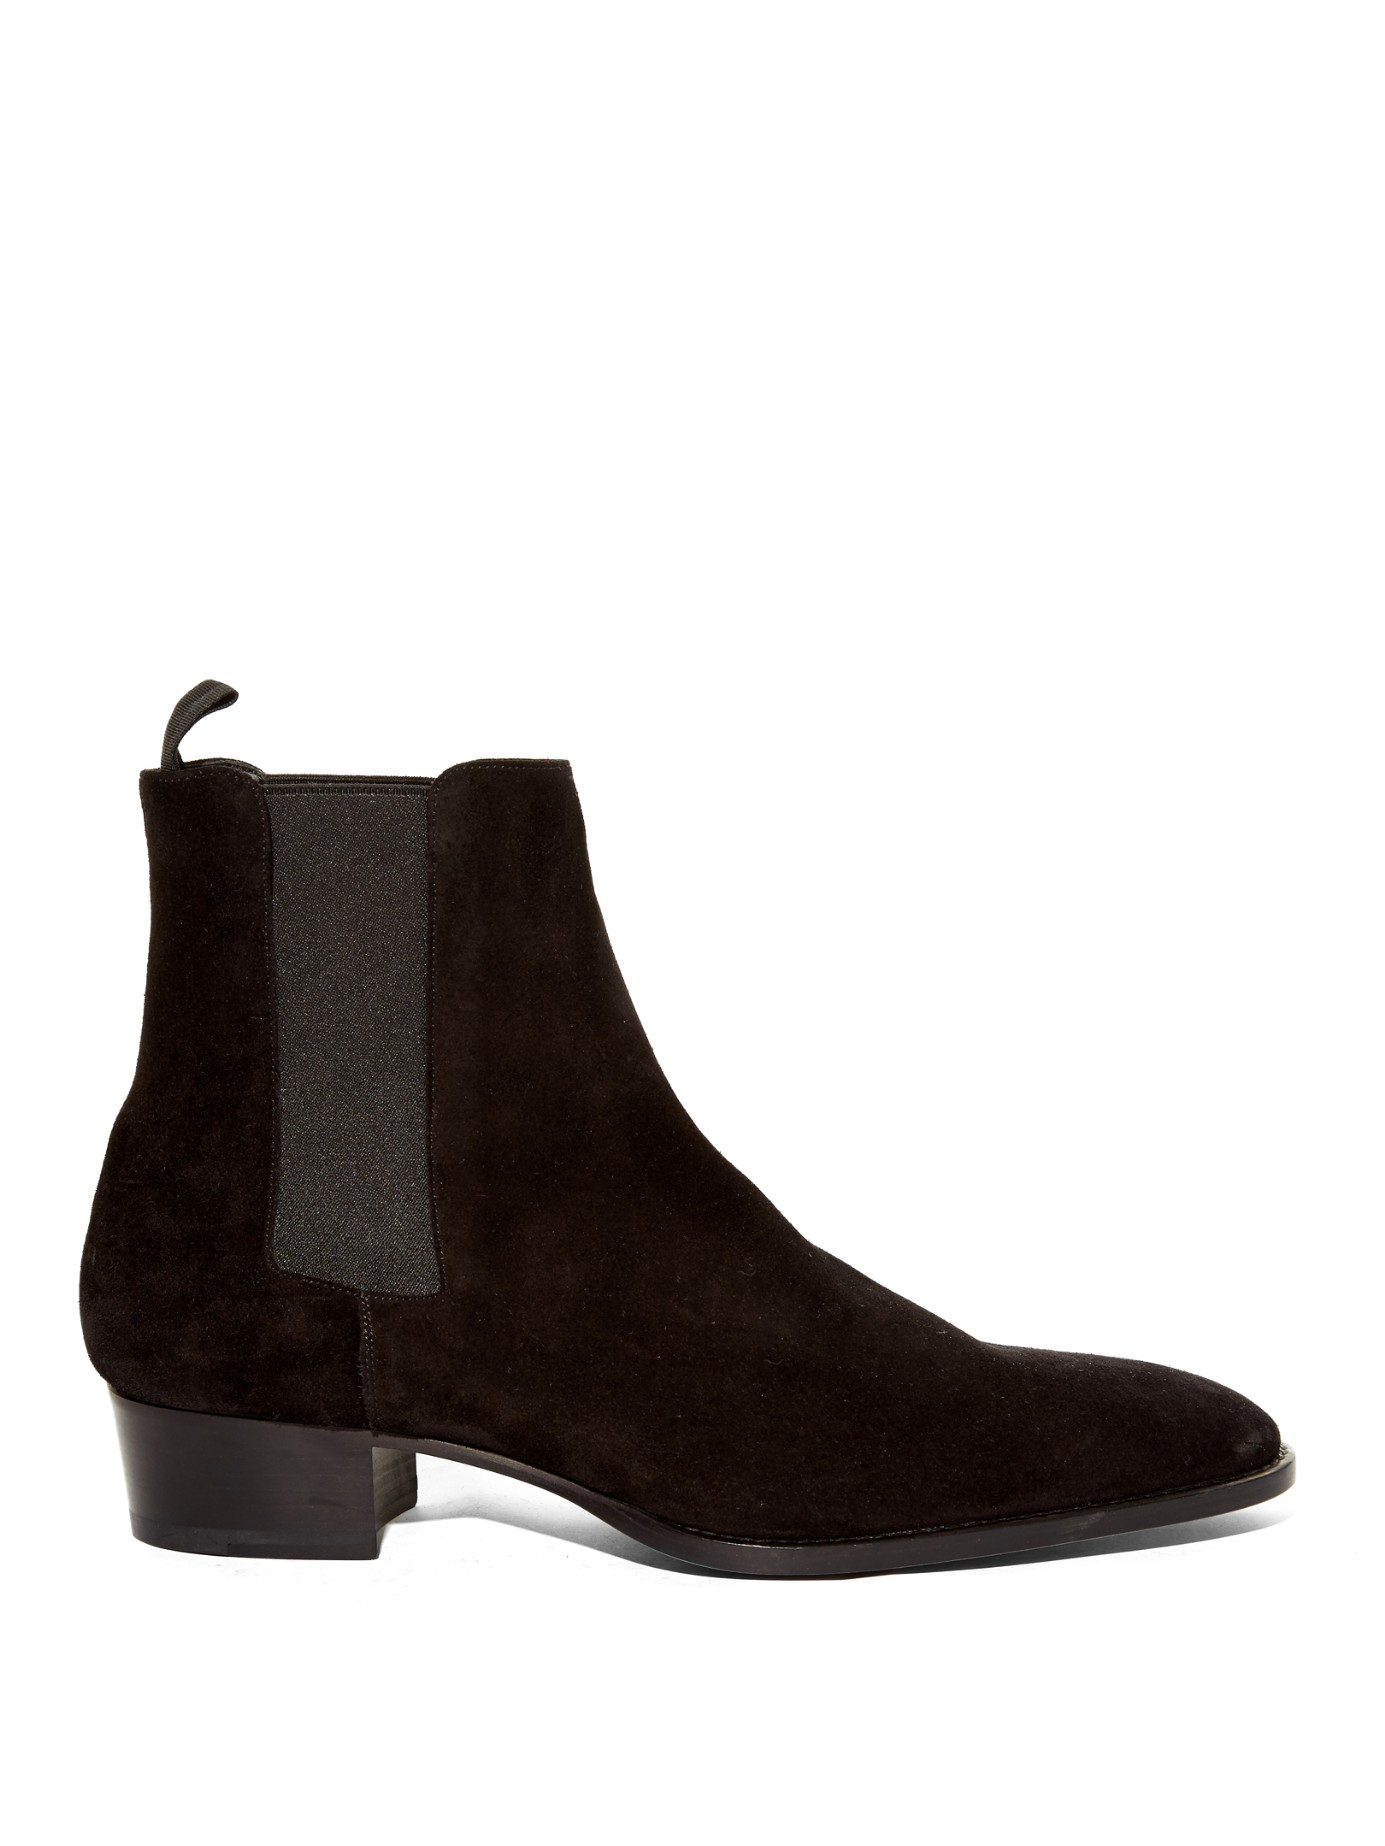 Paul Smith boots are made from suede or leather and range from rugged workwear and hiking inspired styles to sophisticated Chelsea boots. Shop the collection now.